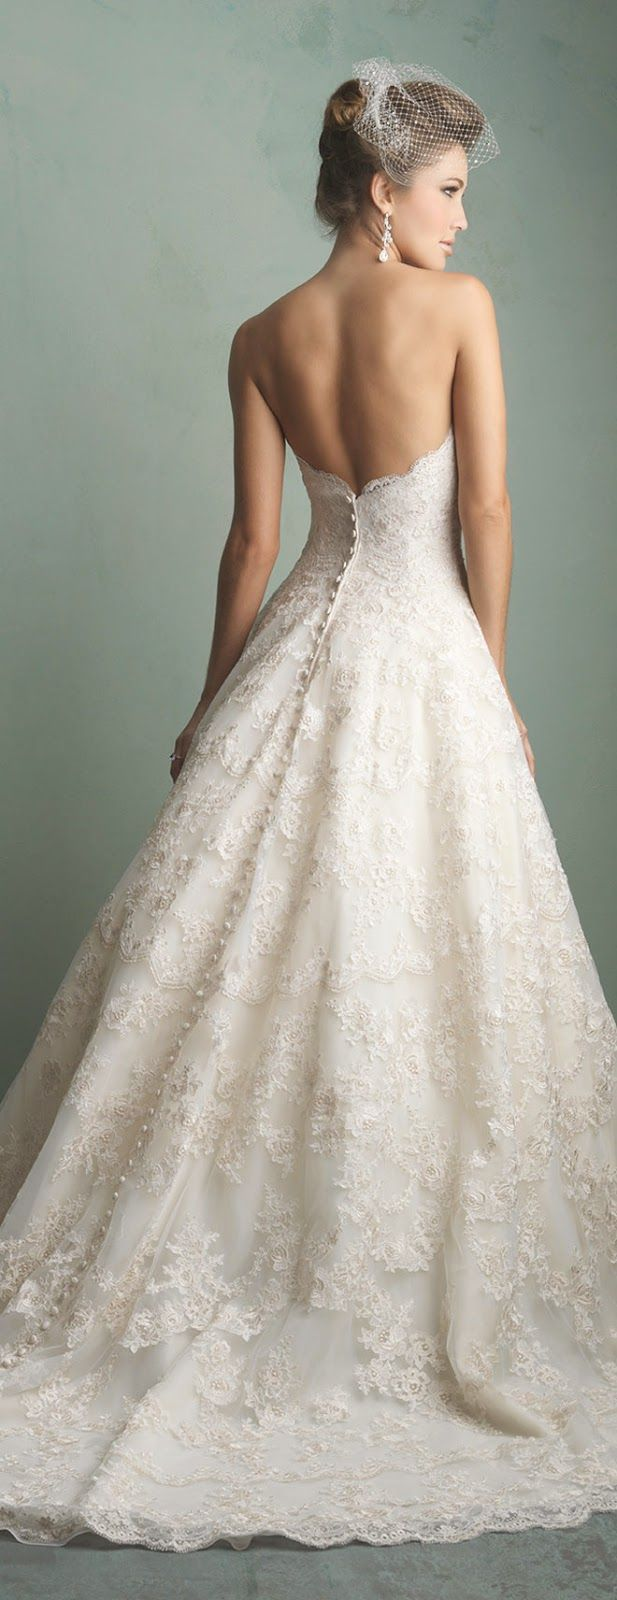 Things To Know Before Buying Your Wedding Dress Part 2